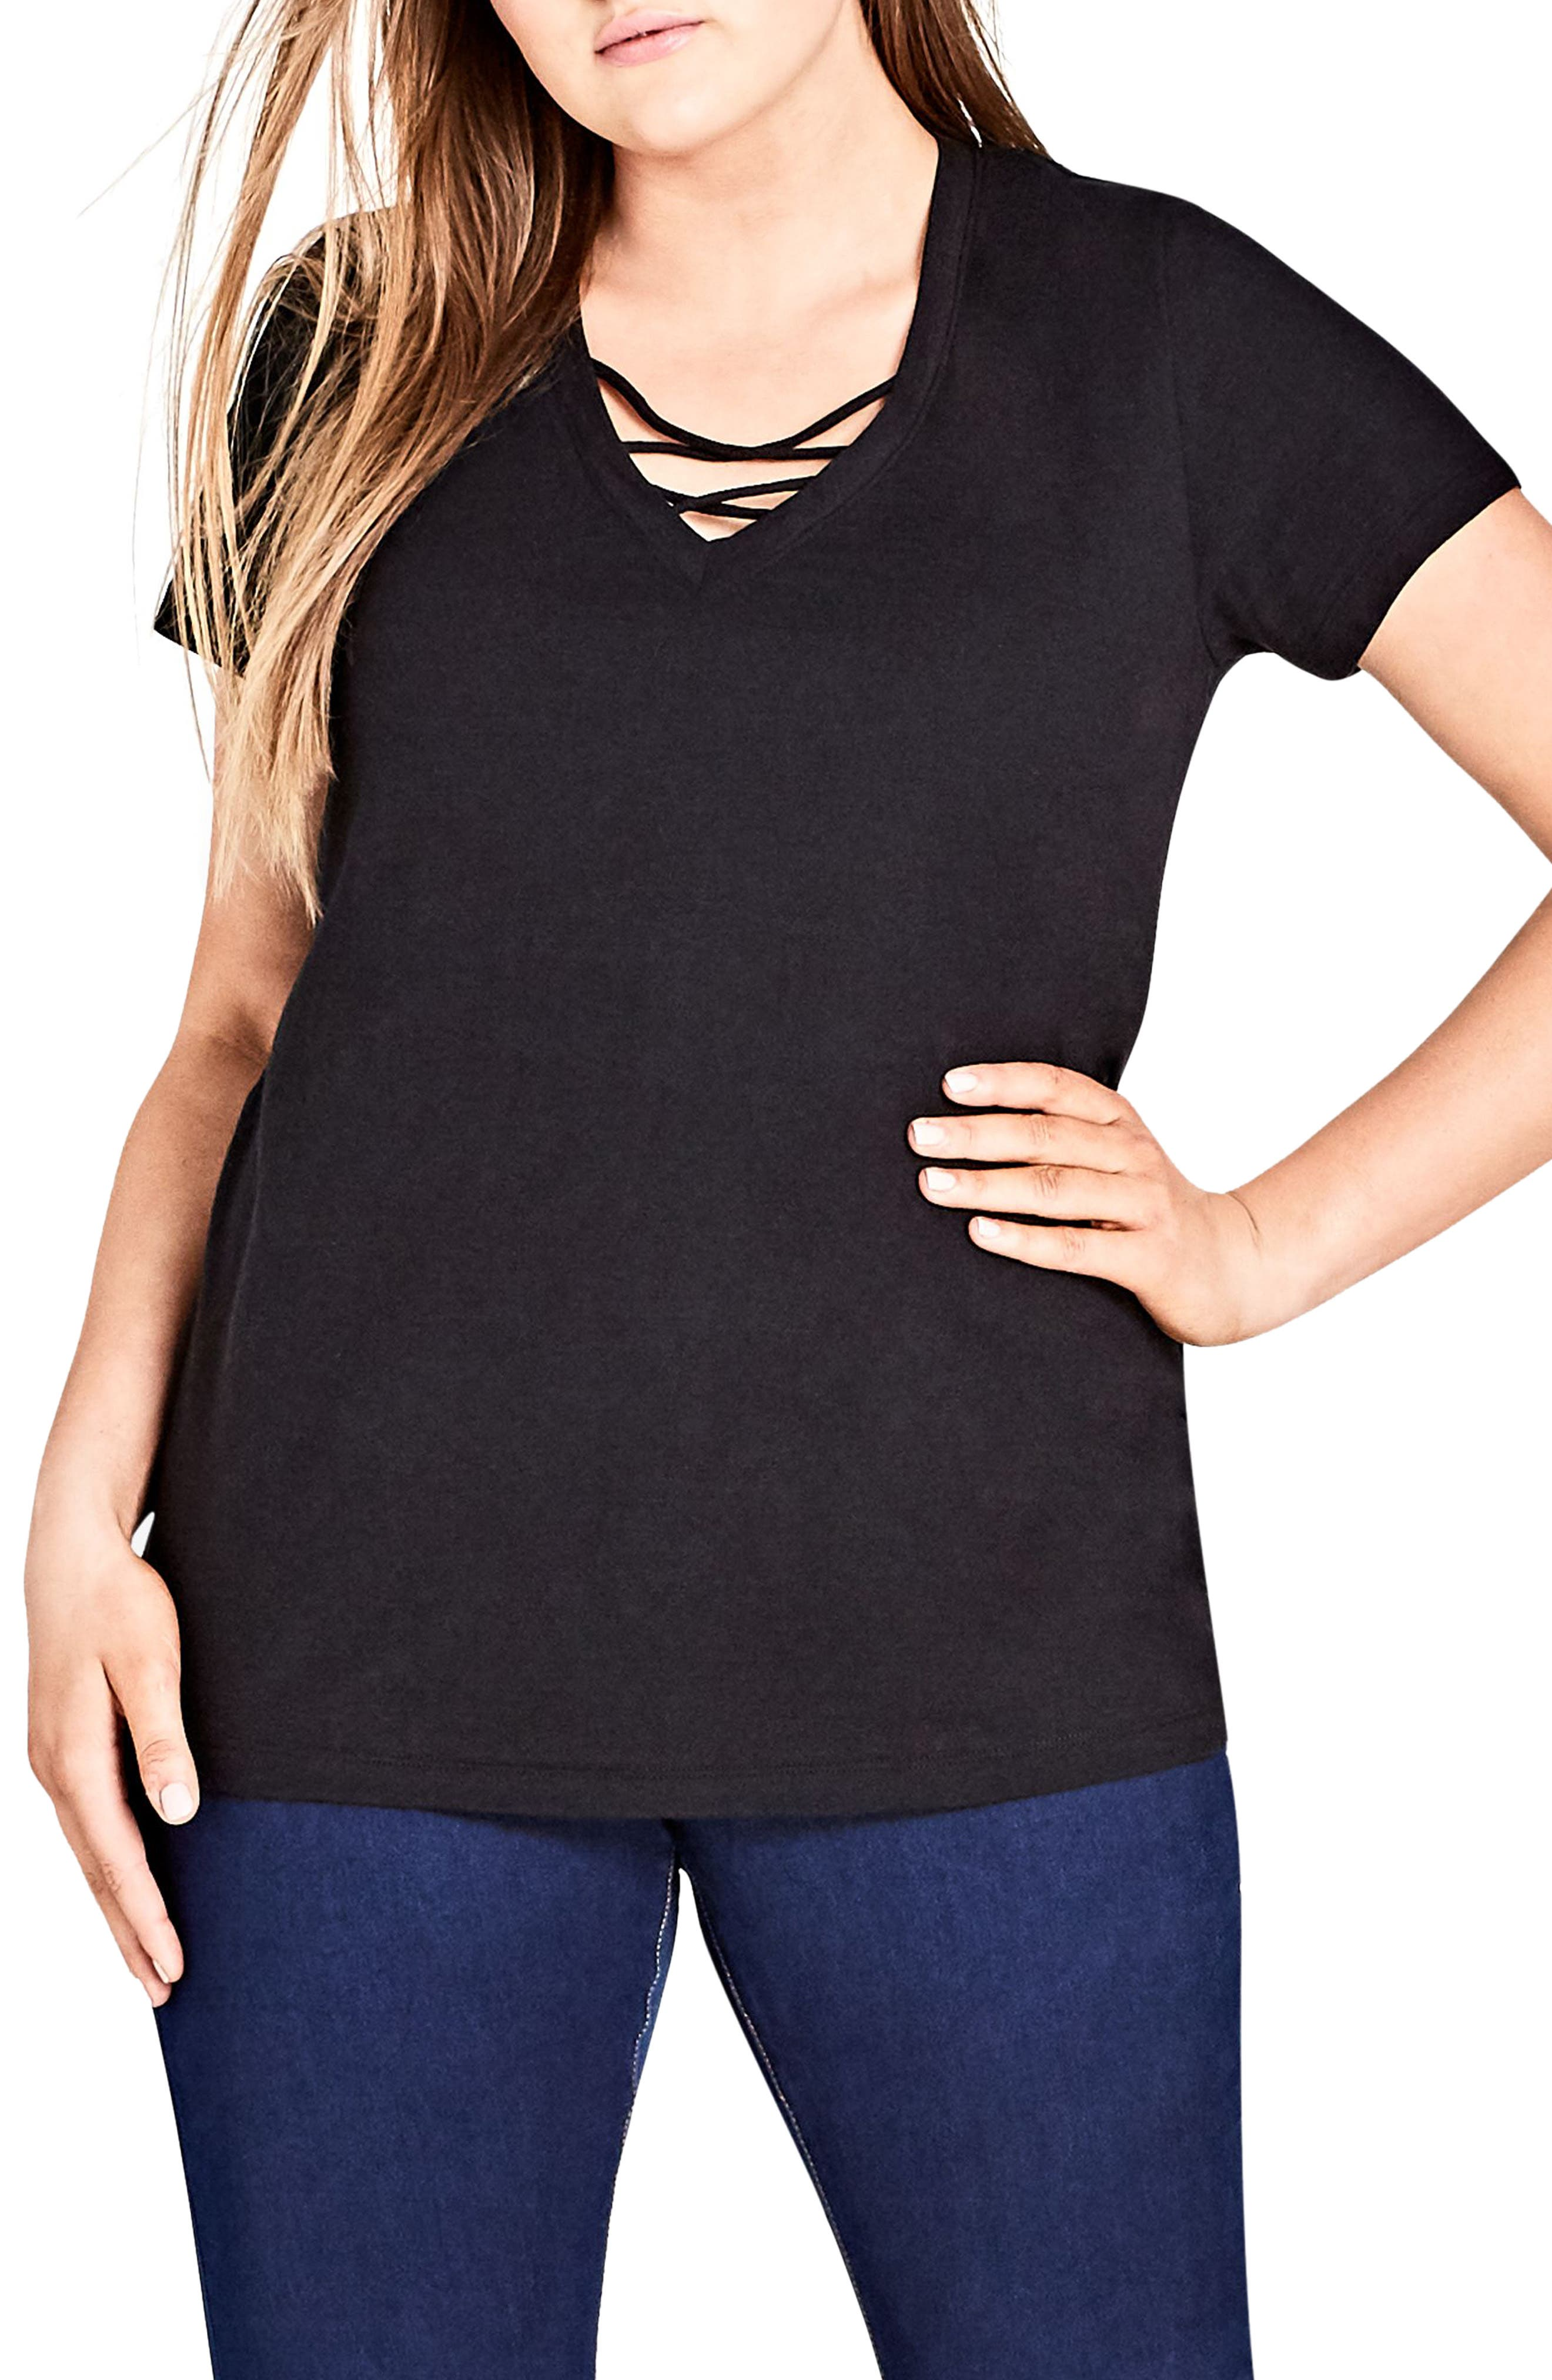 Alternate Image 1 Selected - City Chic Detail V-Neck Tee (Plus Size)